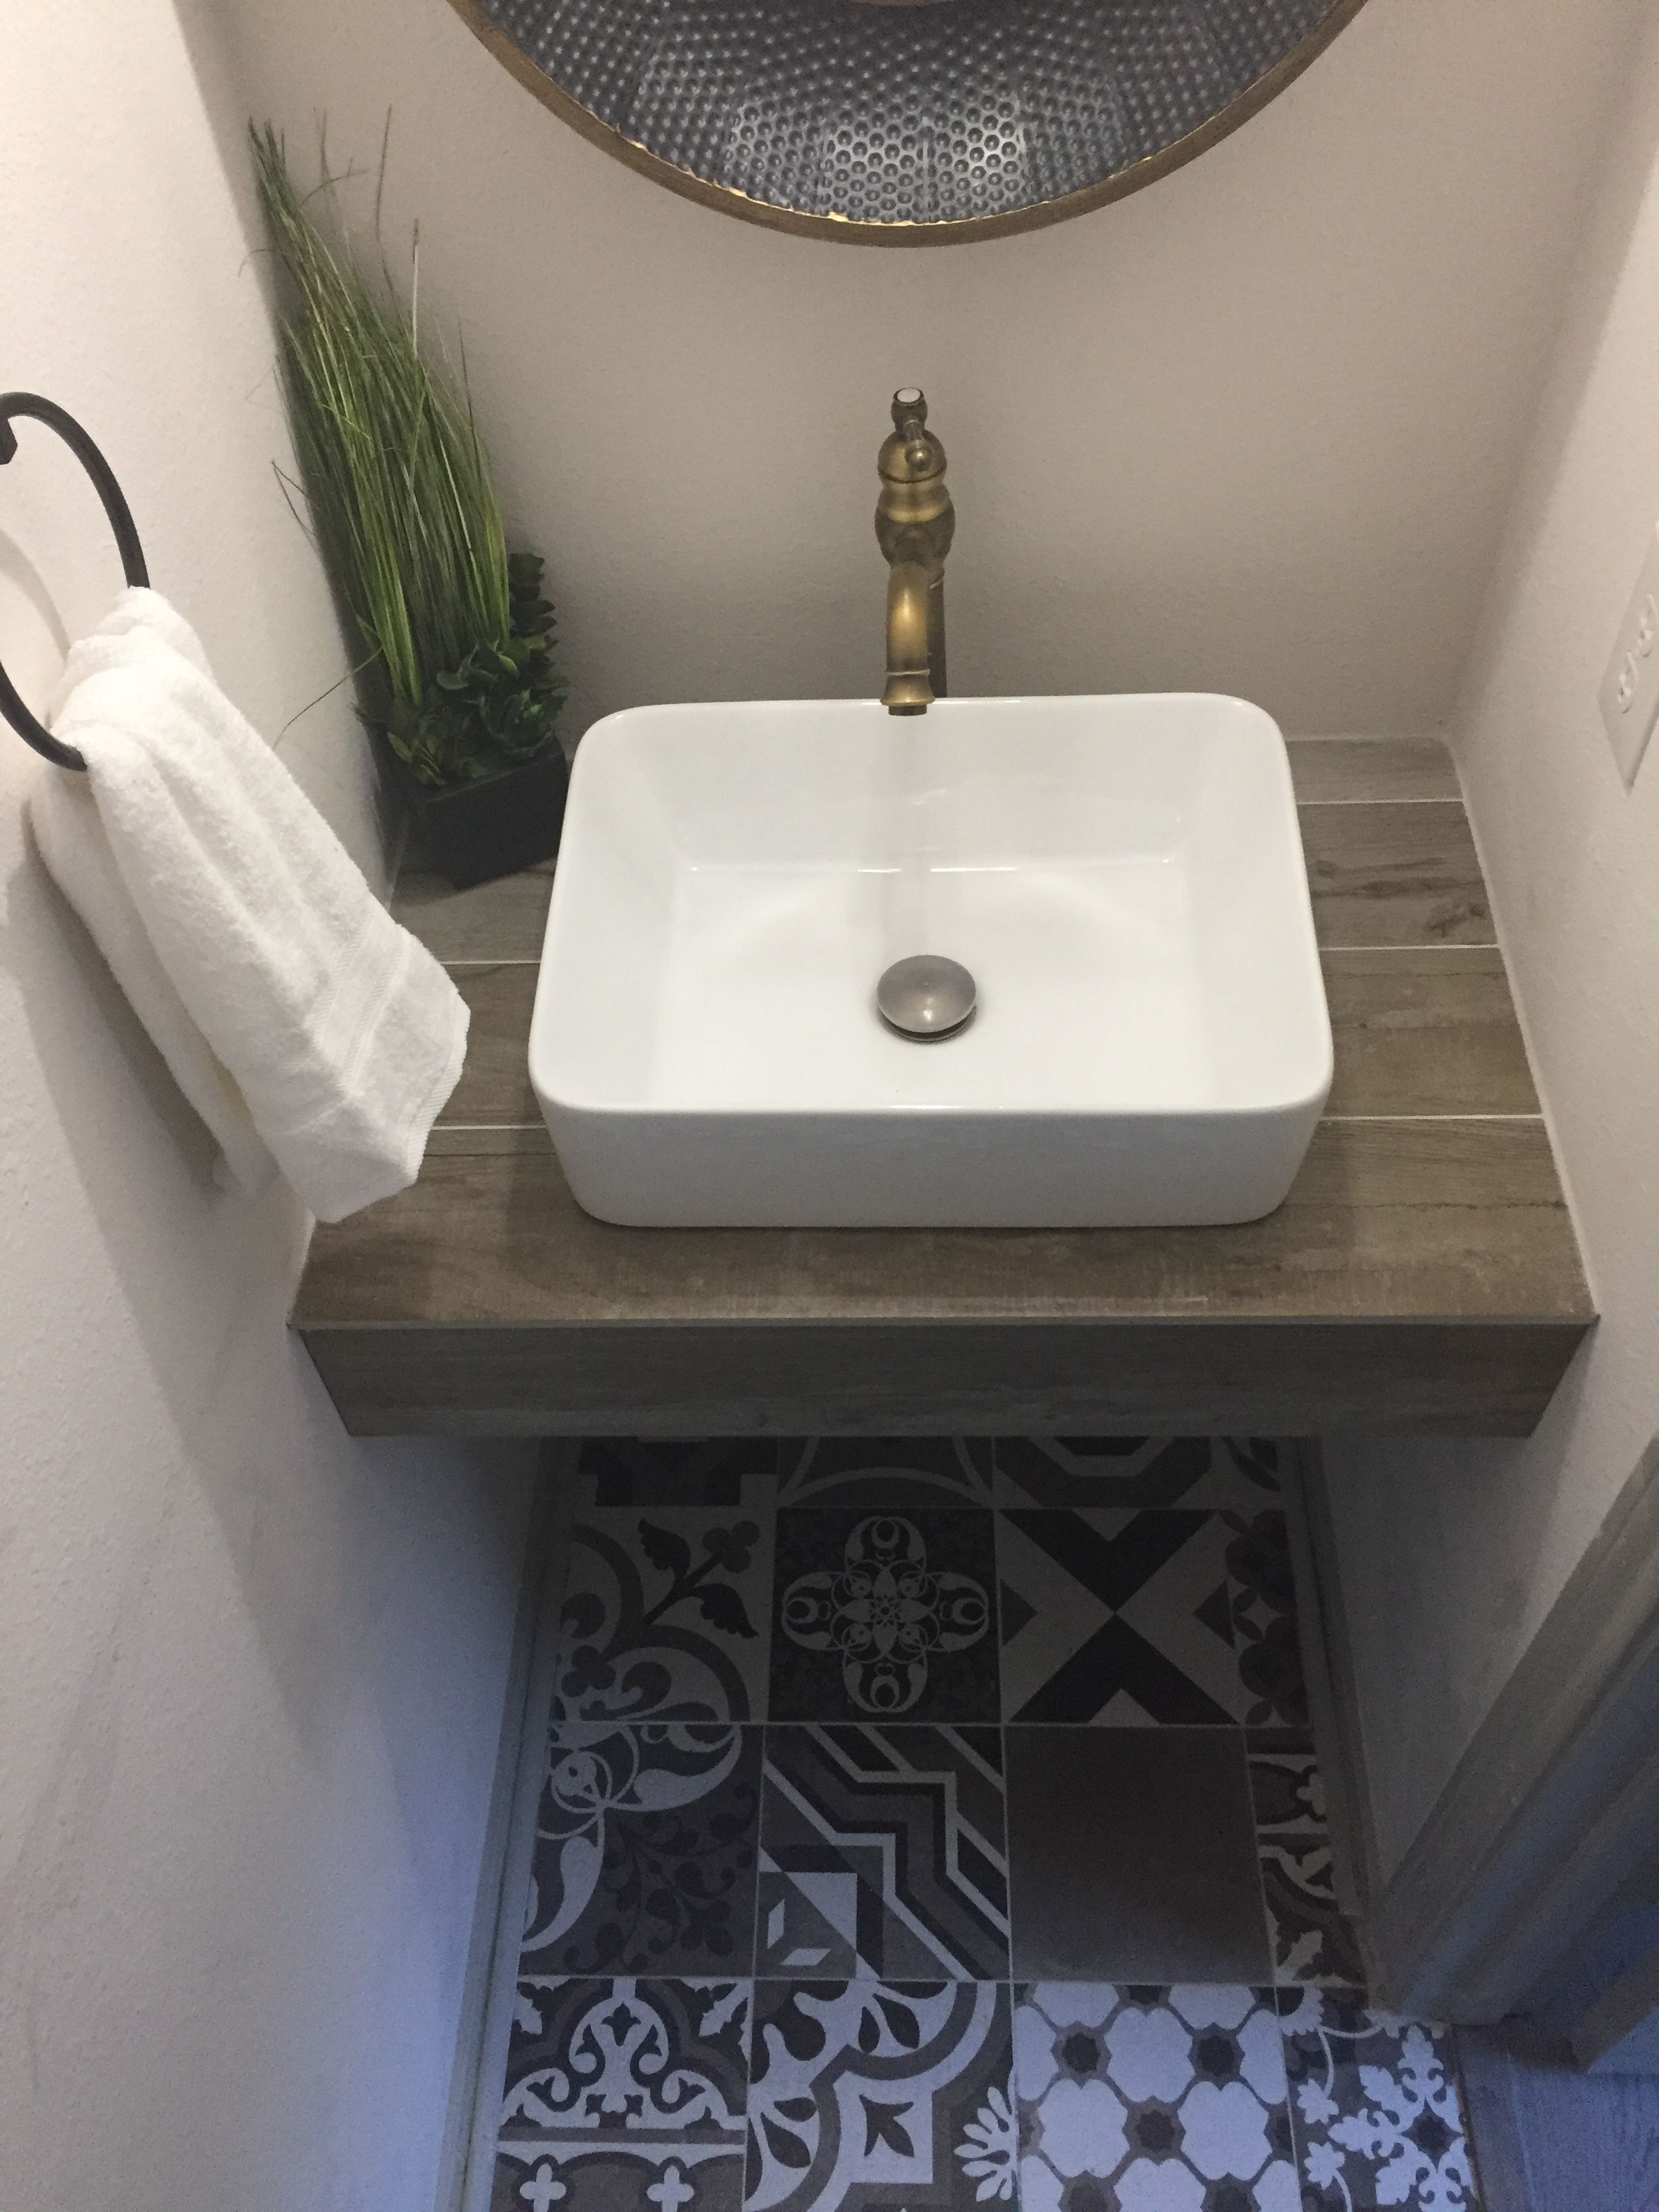 half bathroom remodel new floor tile floating shelf with vessel sink faucet doesn look like otherwise ordinary builders grade anymore metal corner wall bookshelf ideas wood mantel